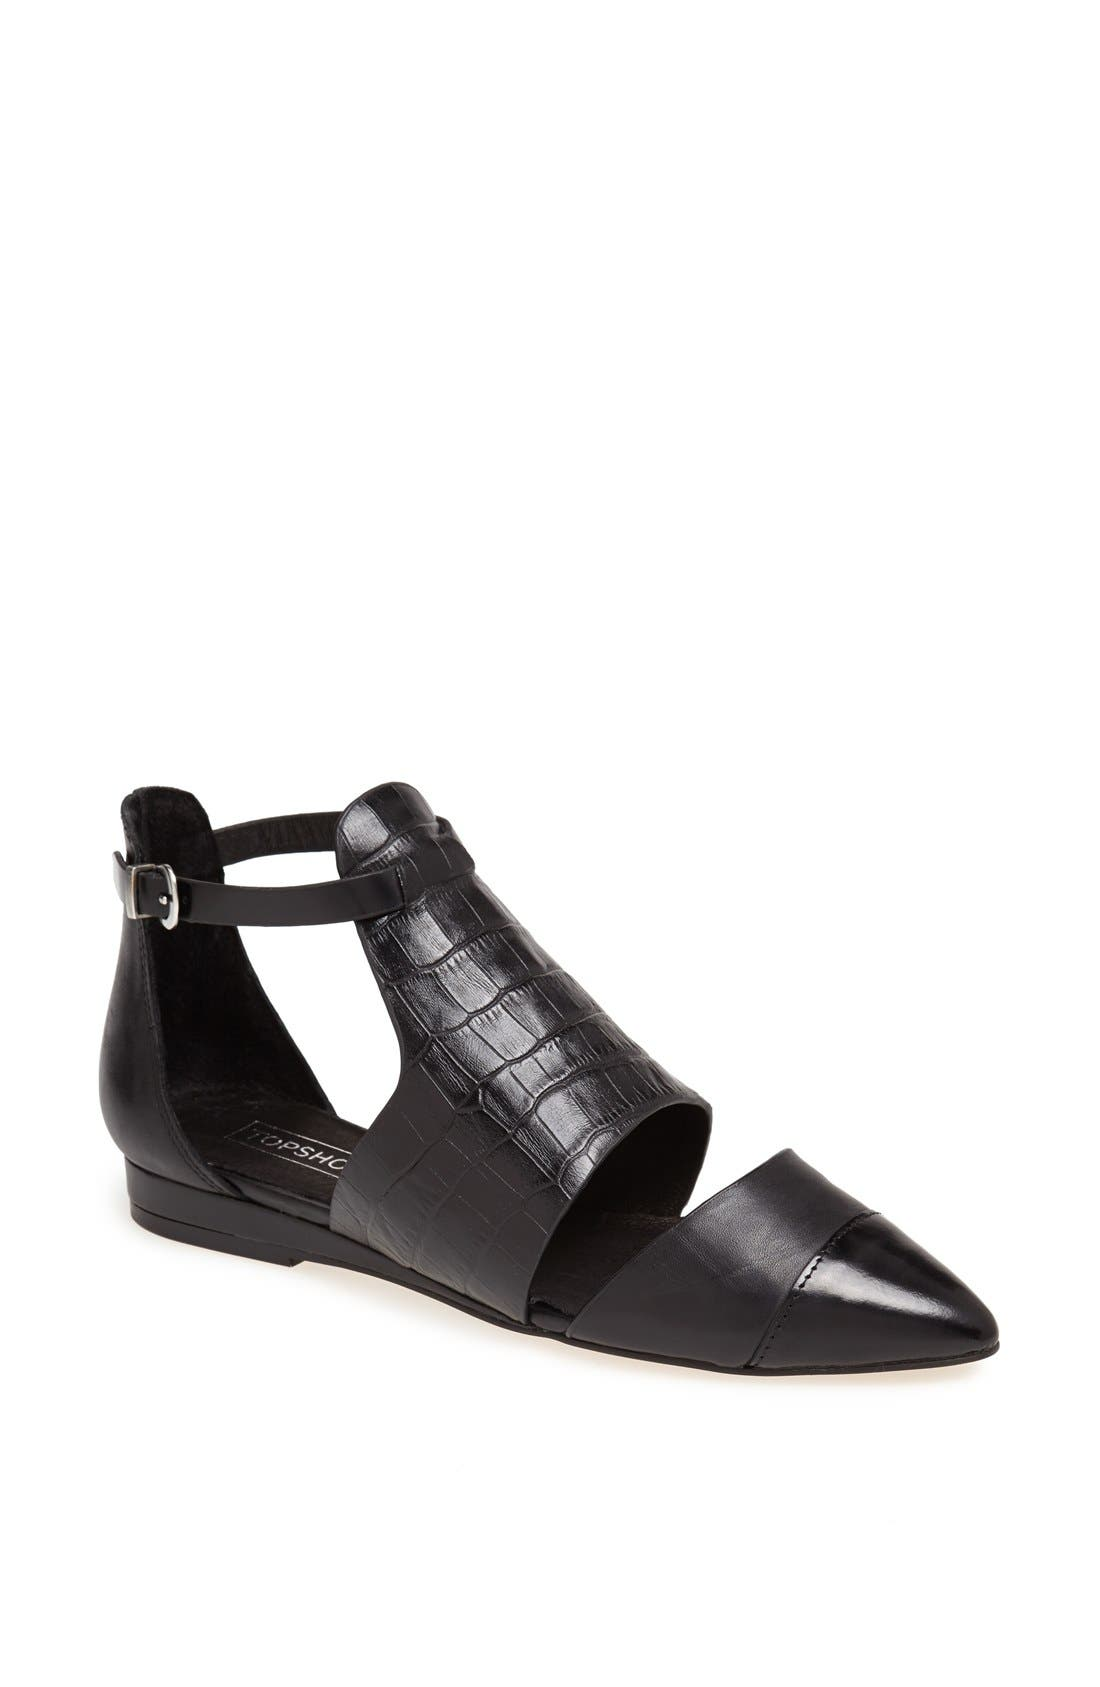 Alternate Image 1 Selected - Topshop 'Kinky' Pointy Toe Flat